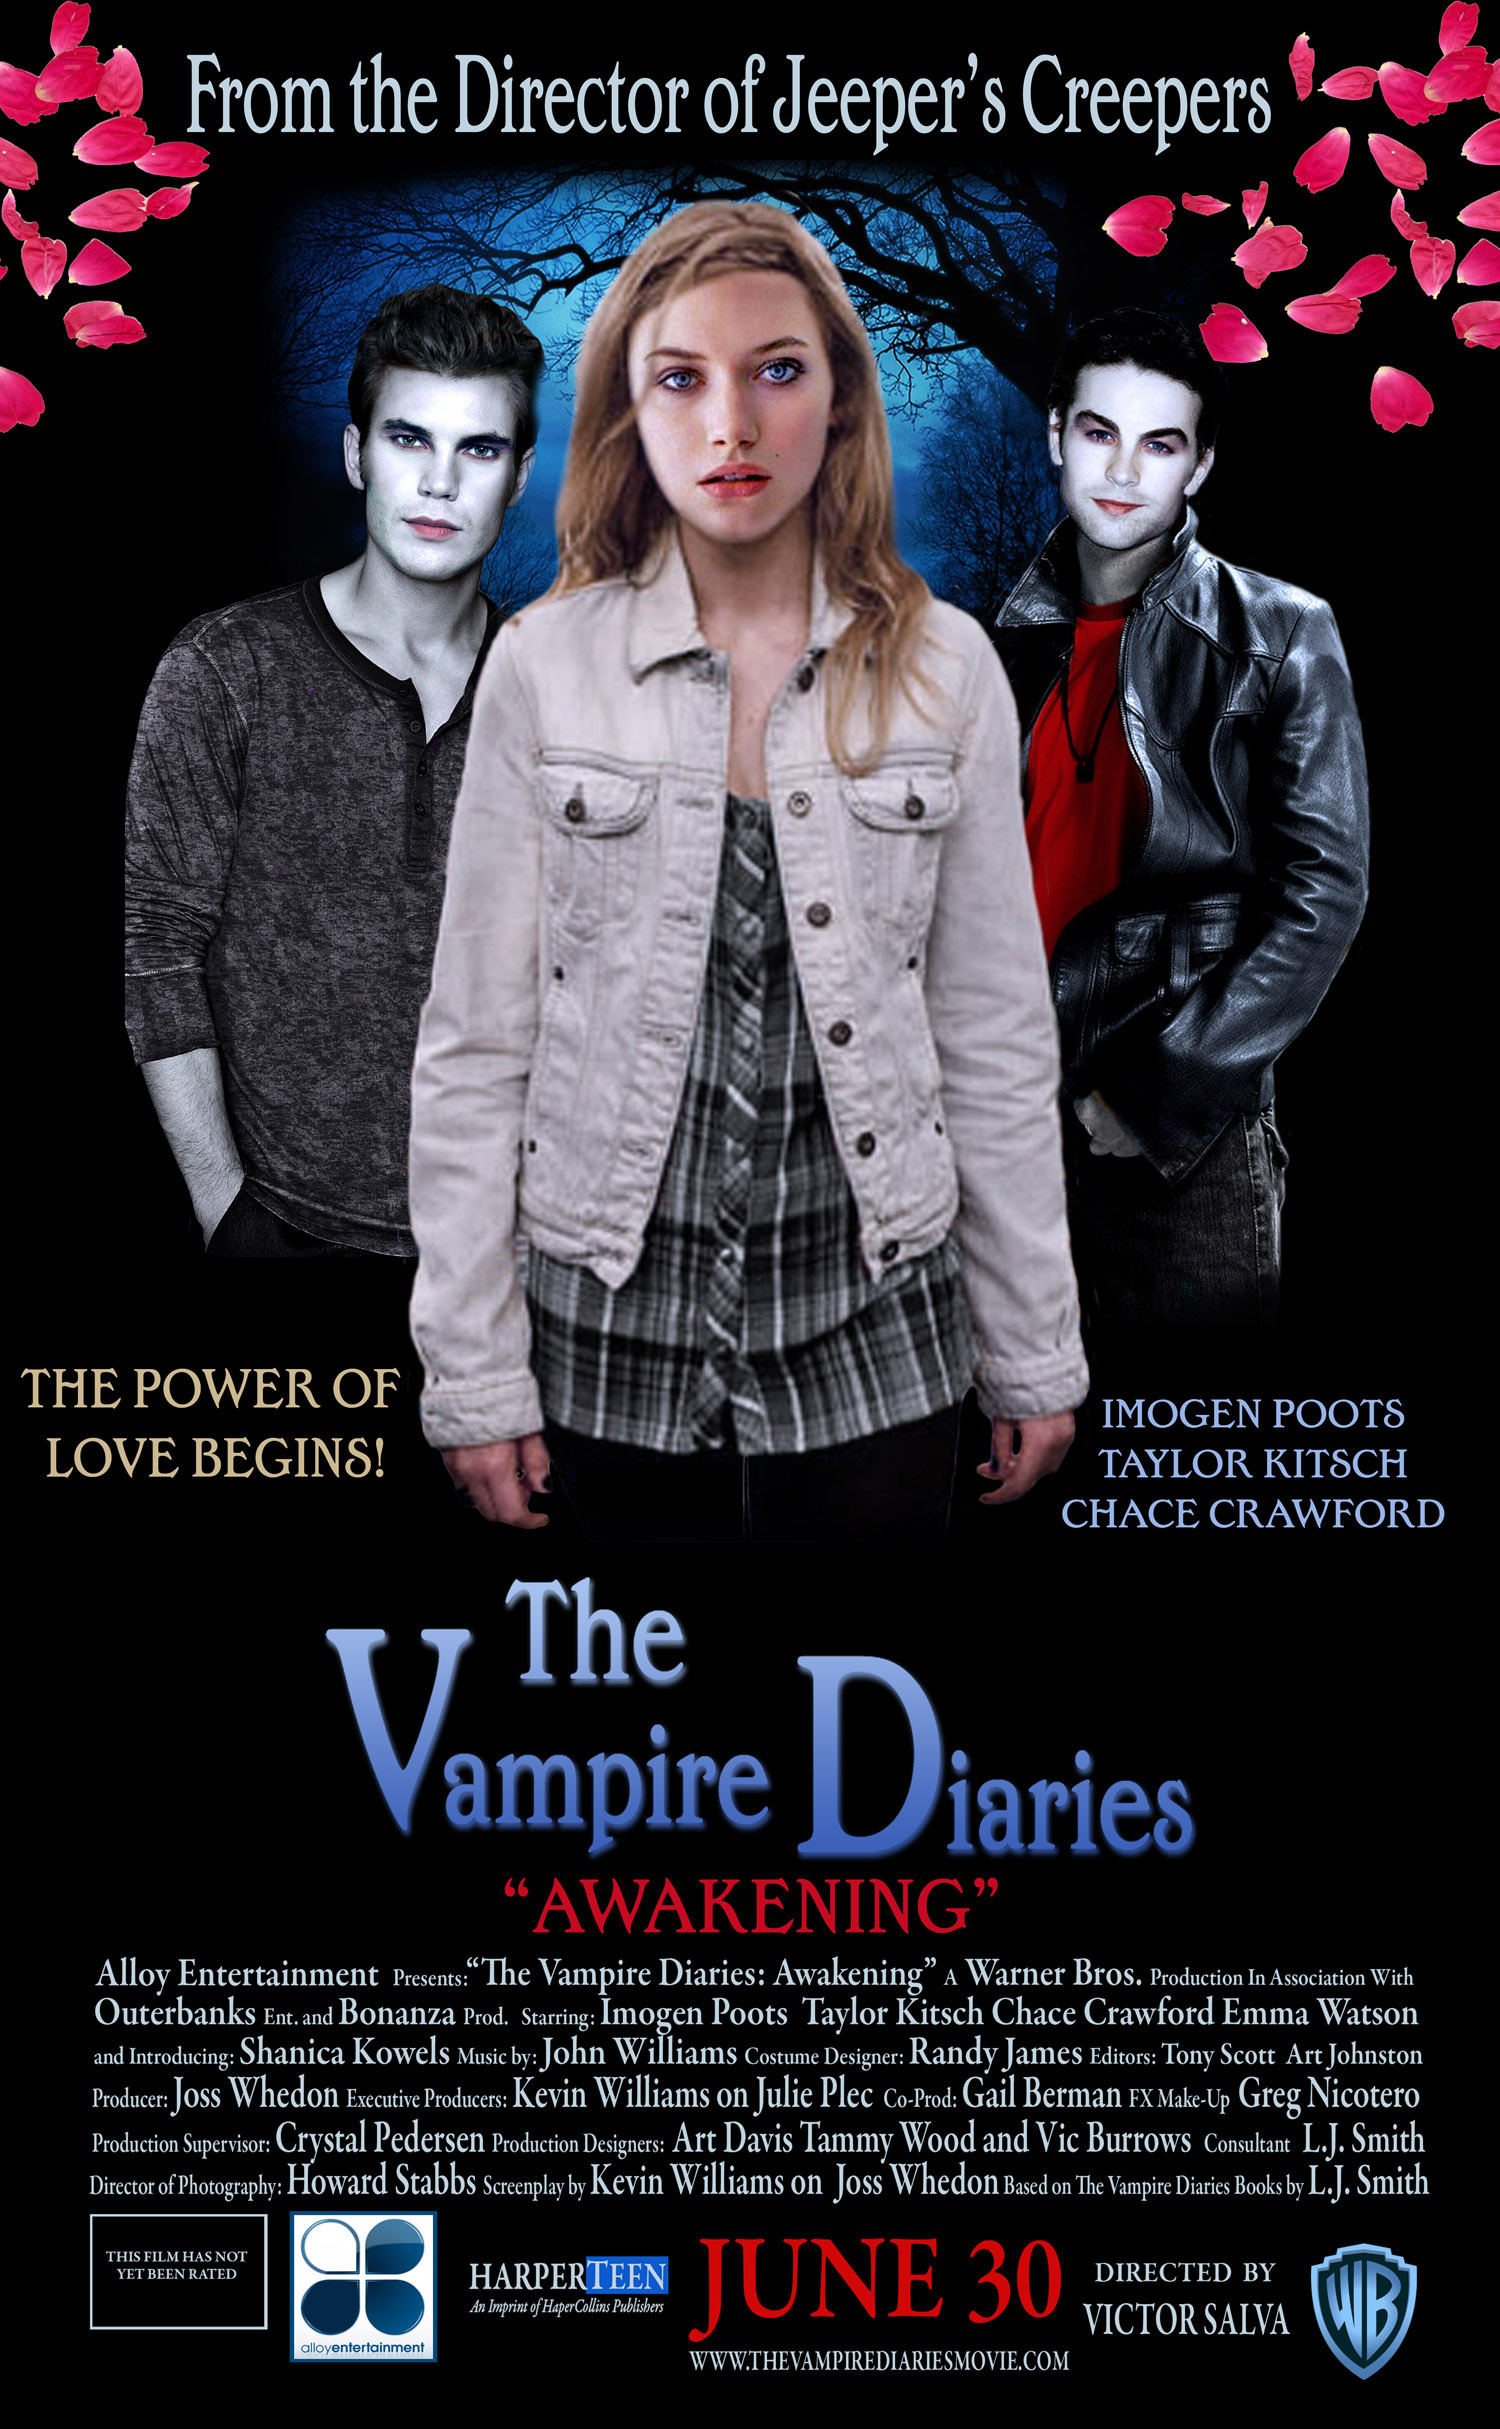 The Vampire Diaries Movie Poster